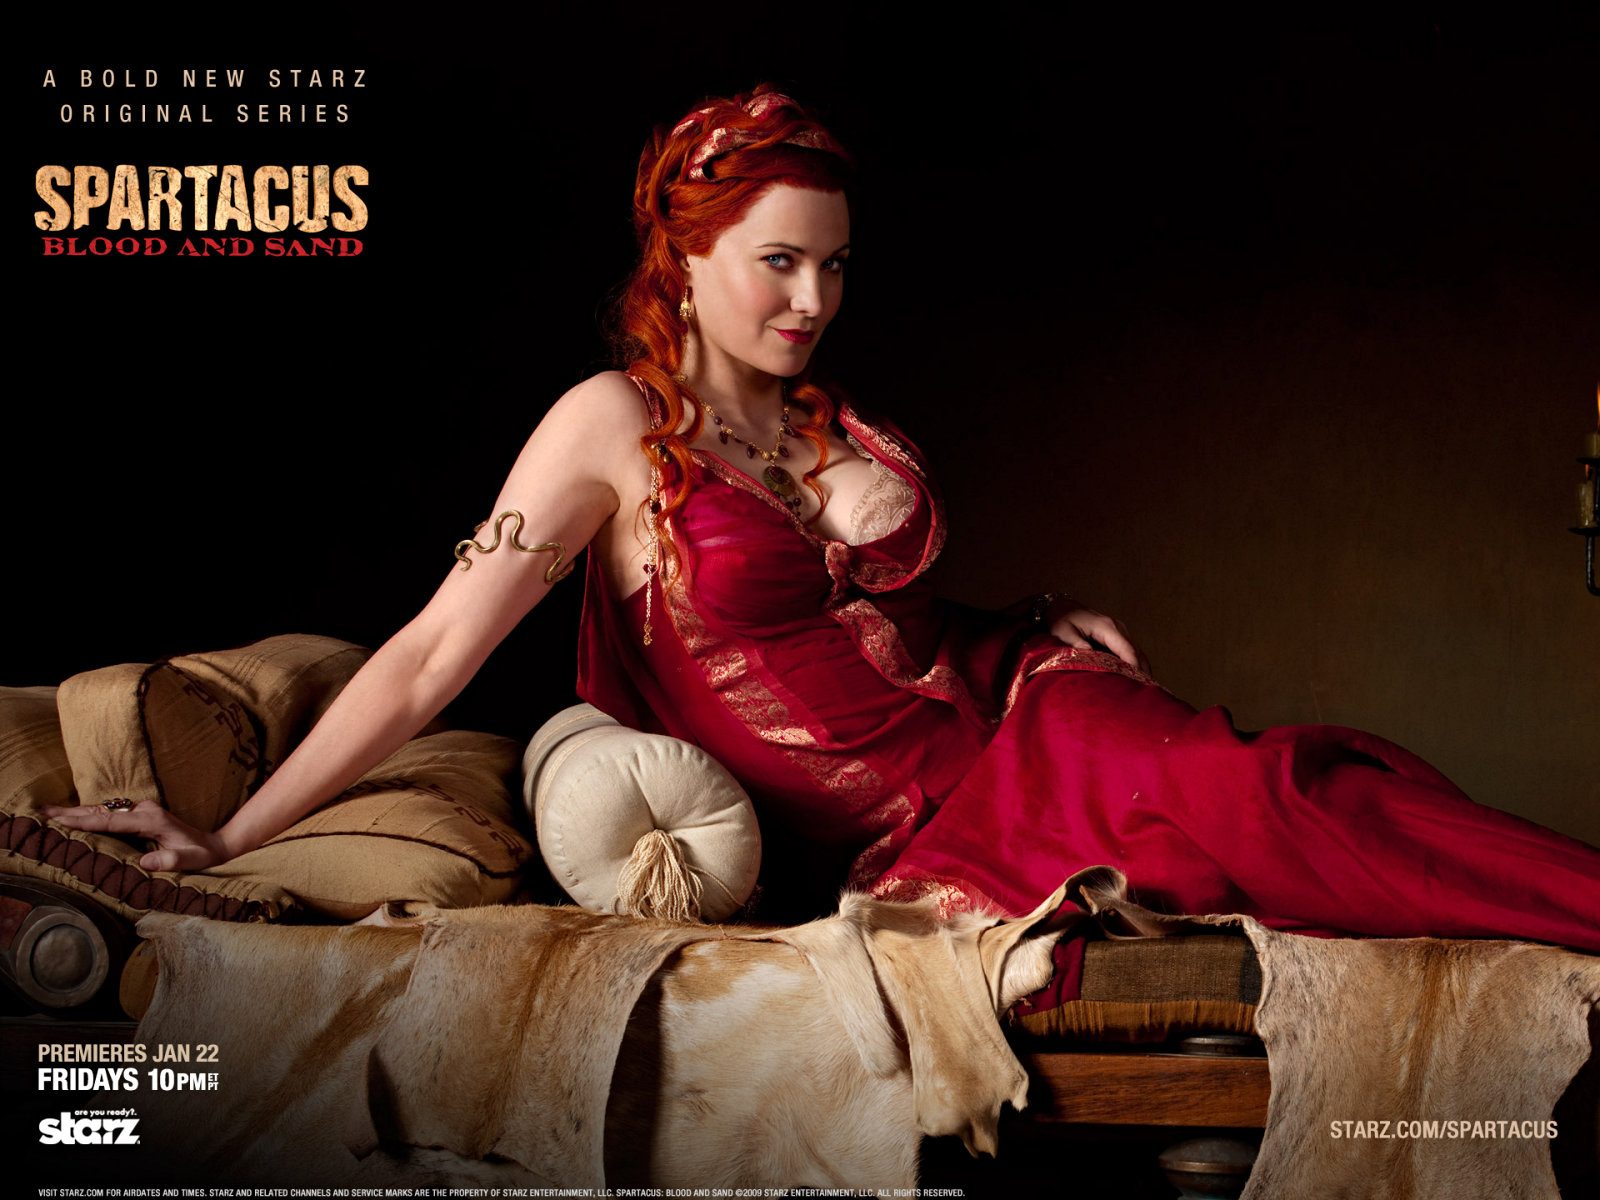 Spartacus: Blood and Sand (2010), Spartacus: Gods of the Arena (2011), Spartacus: Vengeance (2012), Spartacus: War of the Damned (2013) - Page 2 Tv_spartacus_blood_and_sand02